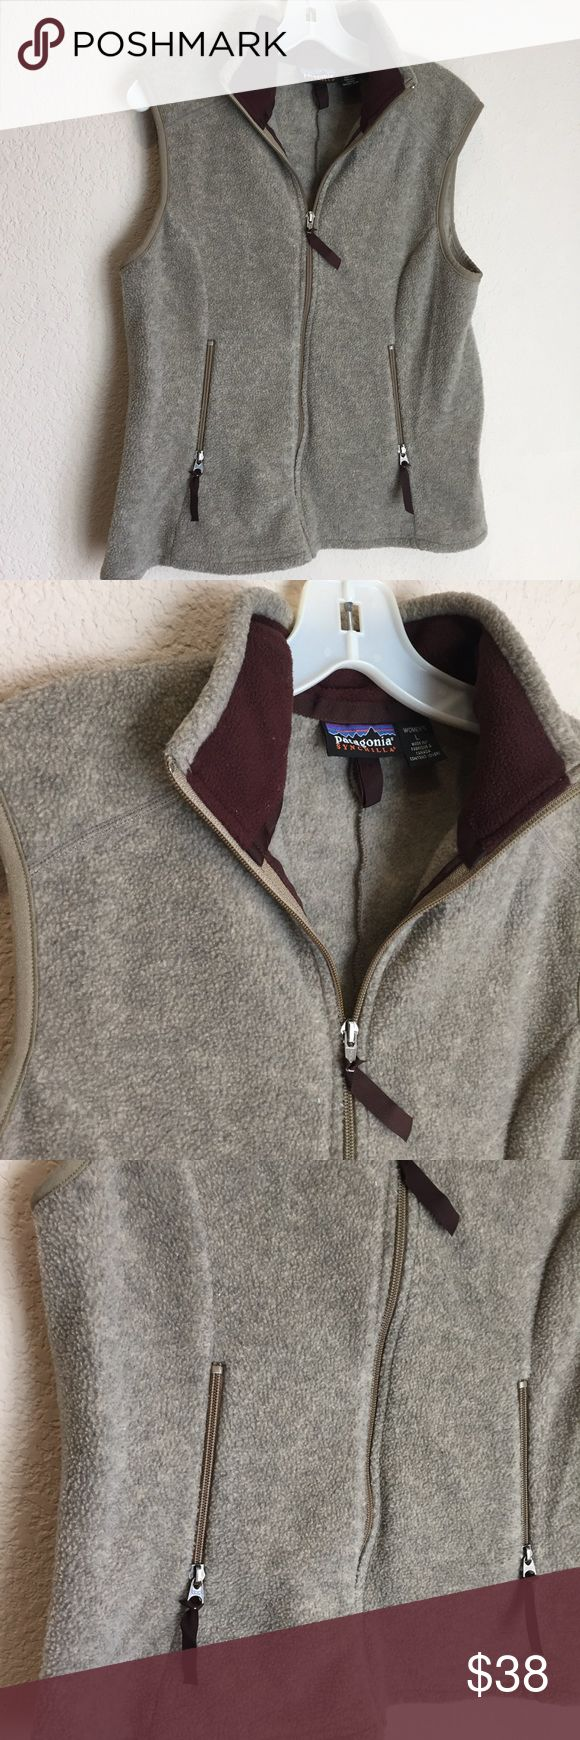 Patagonia synchilla fleece full zip women's vest Patagonia synchilla fleece full zip women's vest great preloved condition Patagonia Jackets & Coats